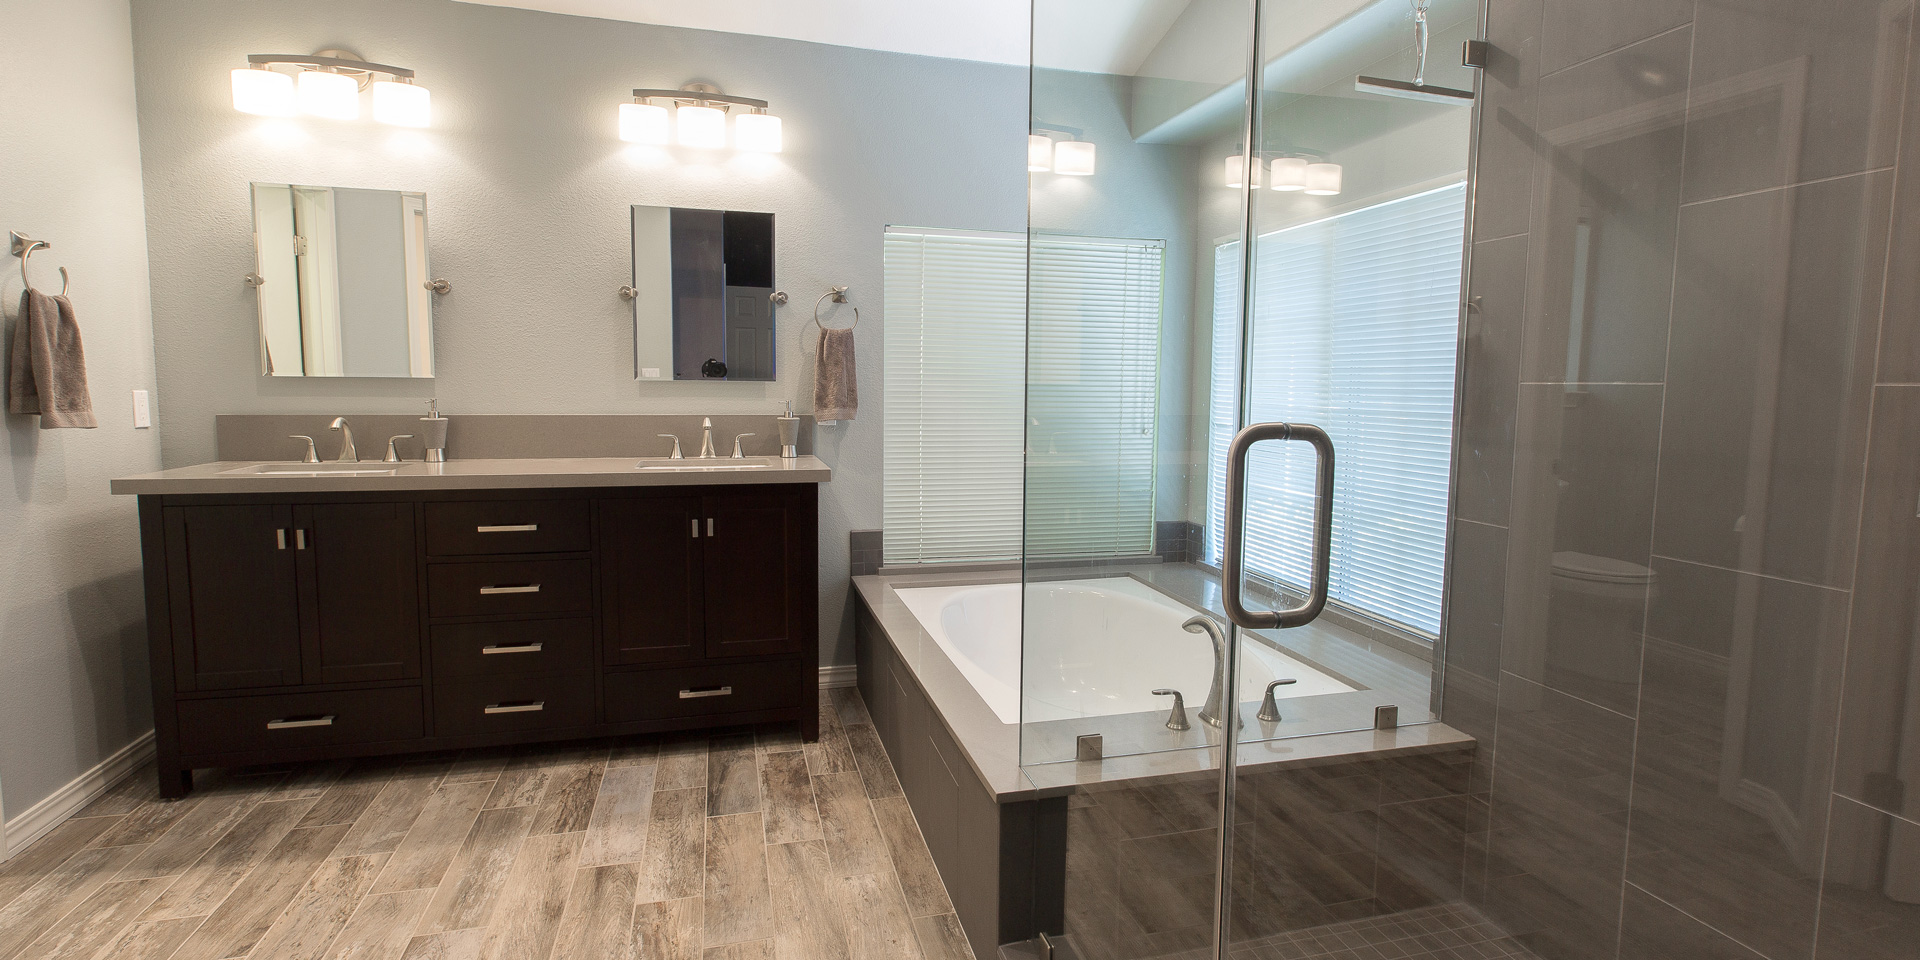 Kitchen & Bathroom Additions | Mikasa Construction